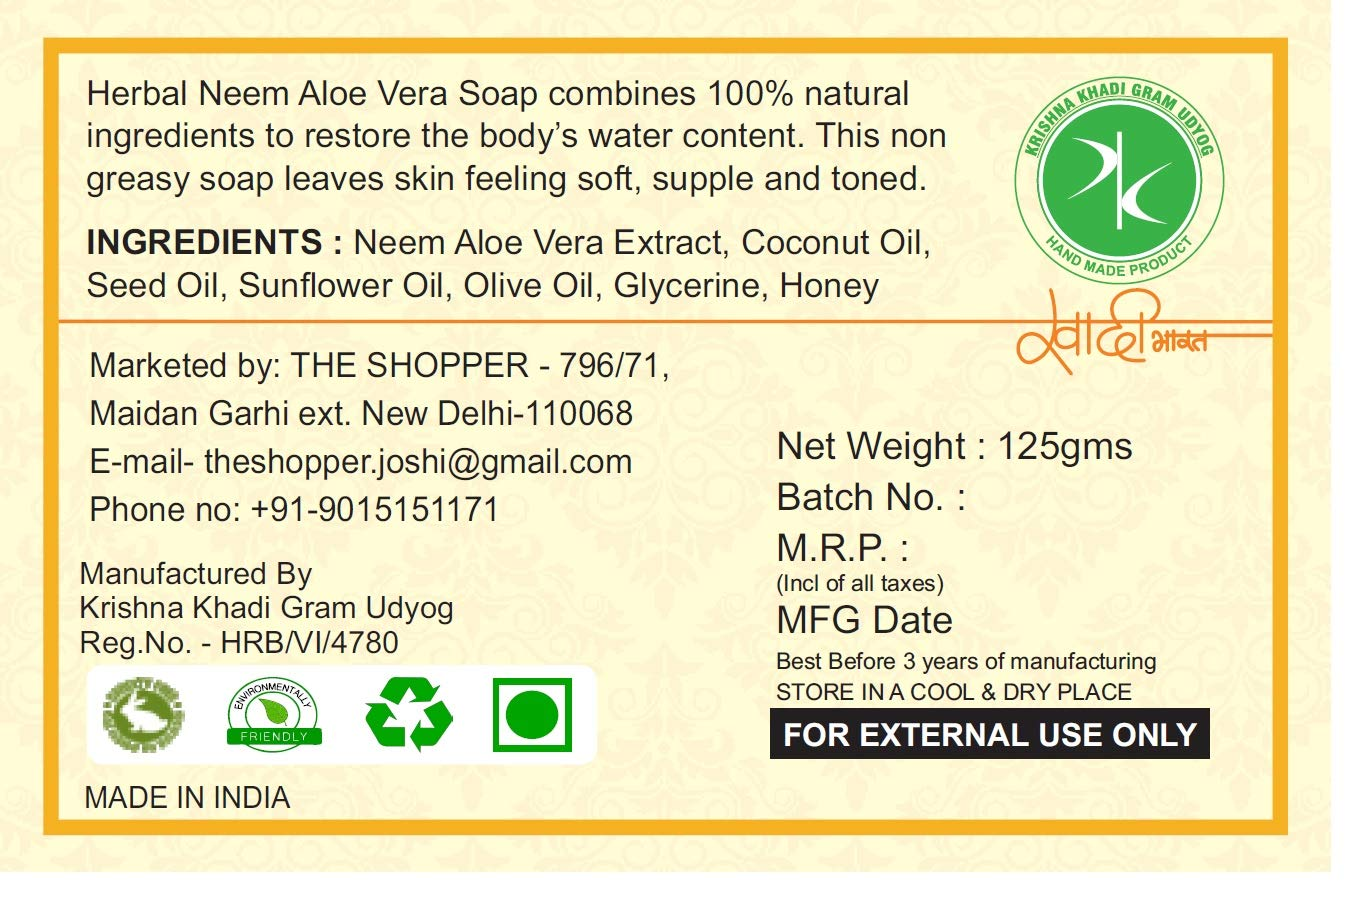 Ayurdaily Herbal Neem Aloevera Soap 625g (Pack of 5)